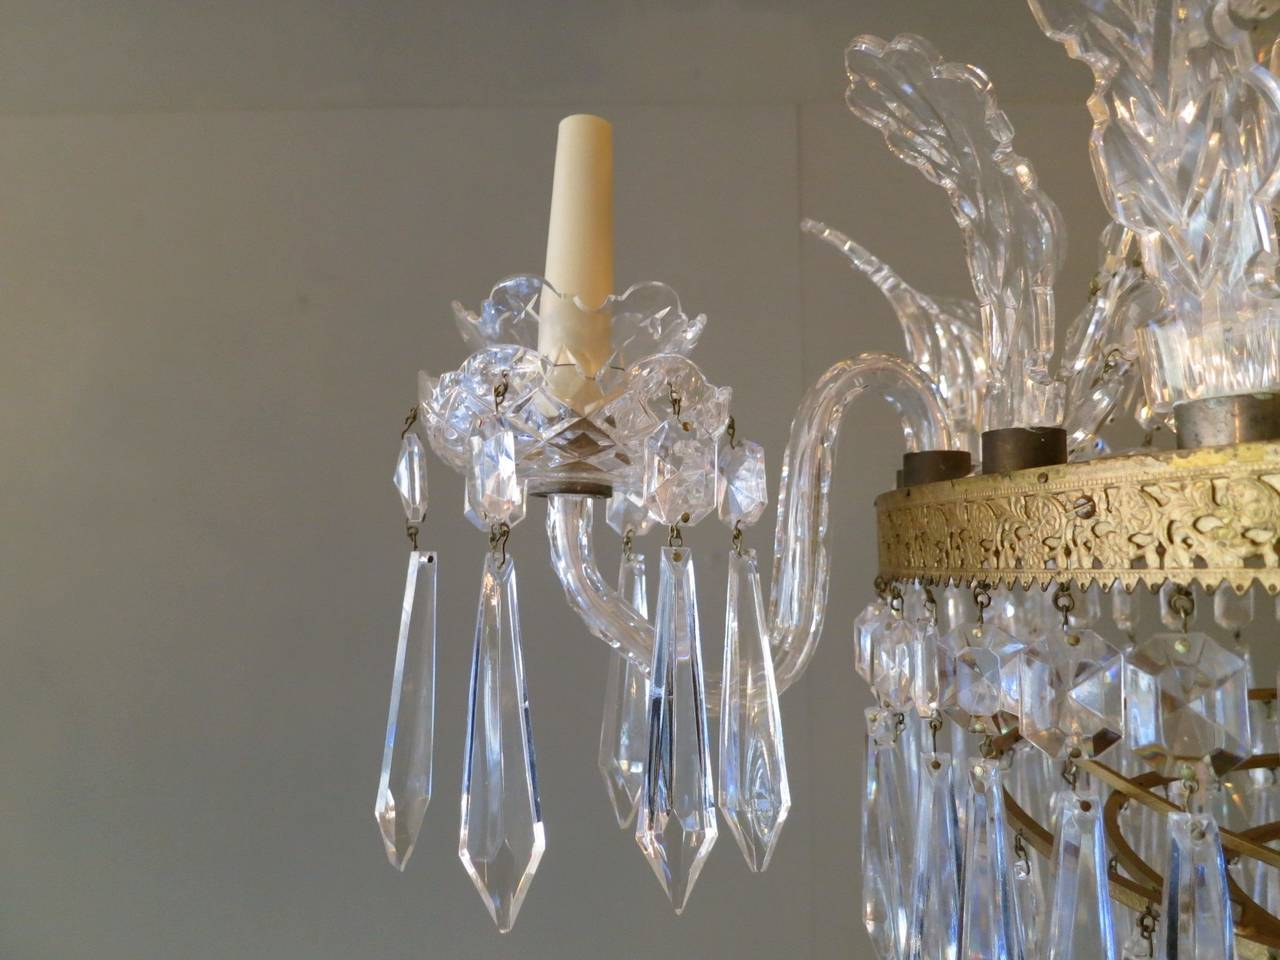 Empire style waterford crystal chandelier at 1stdibs empire style waterford crystal chandelier 2 arubaitofo Gallery